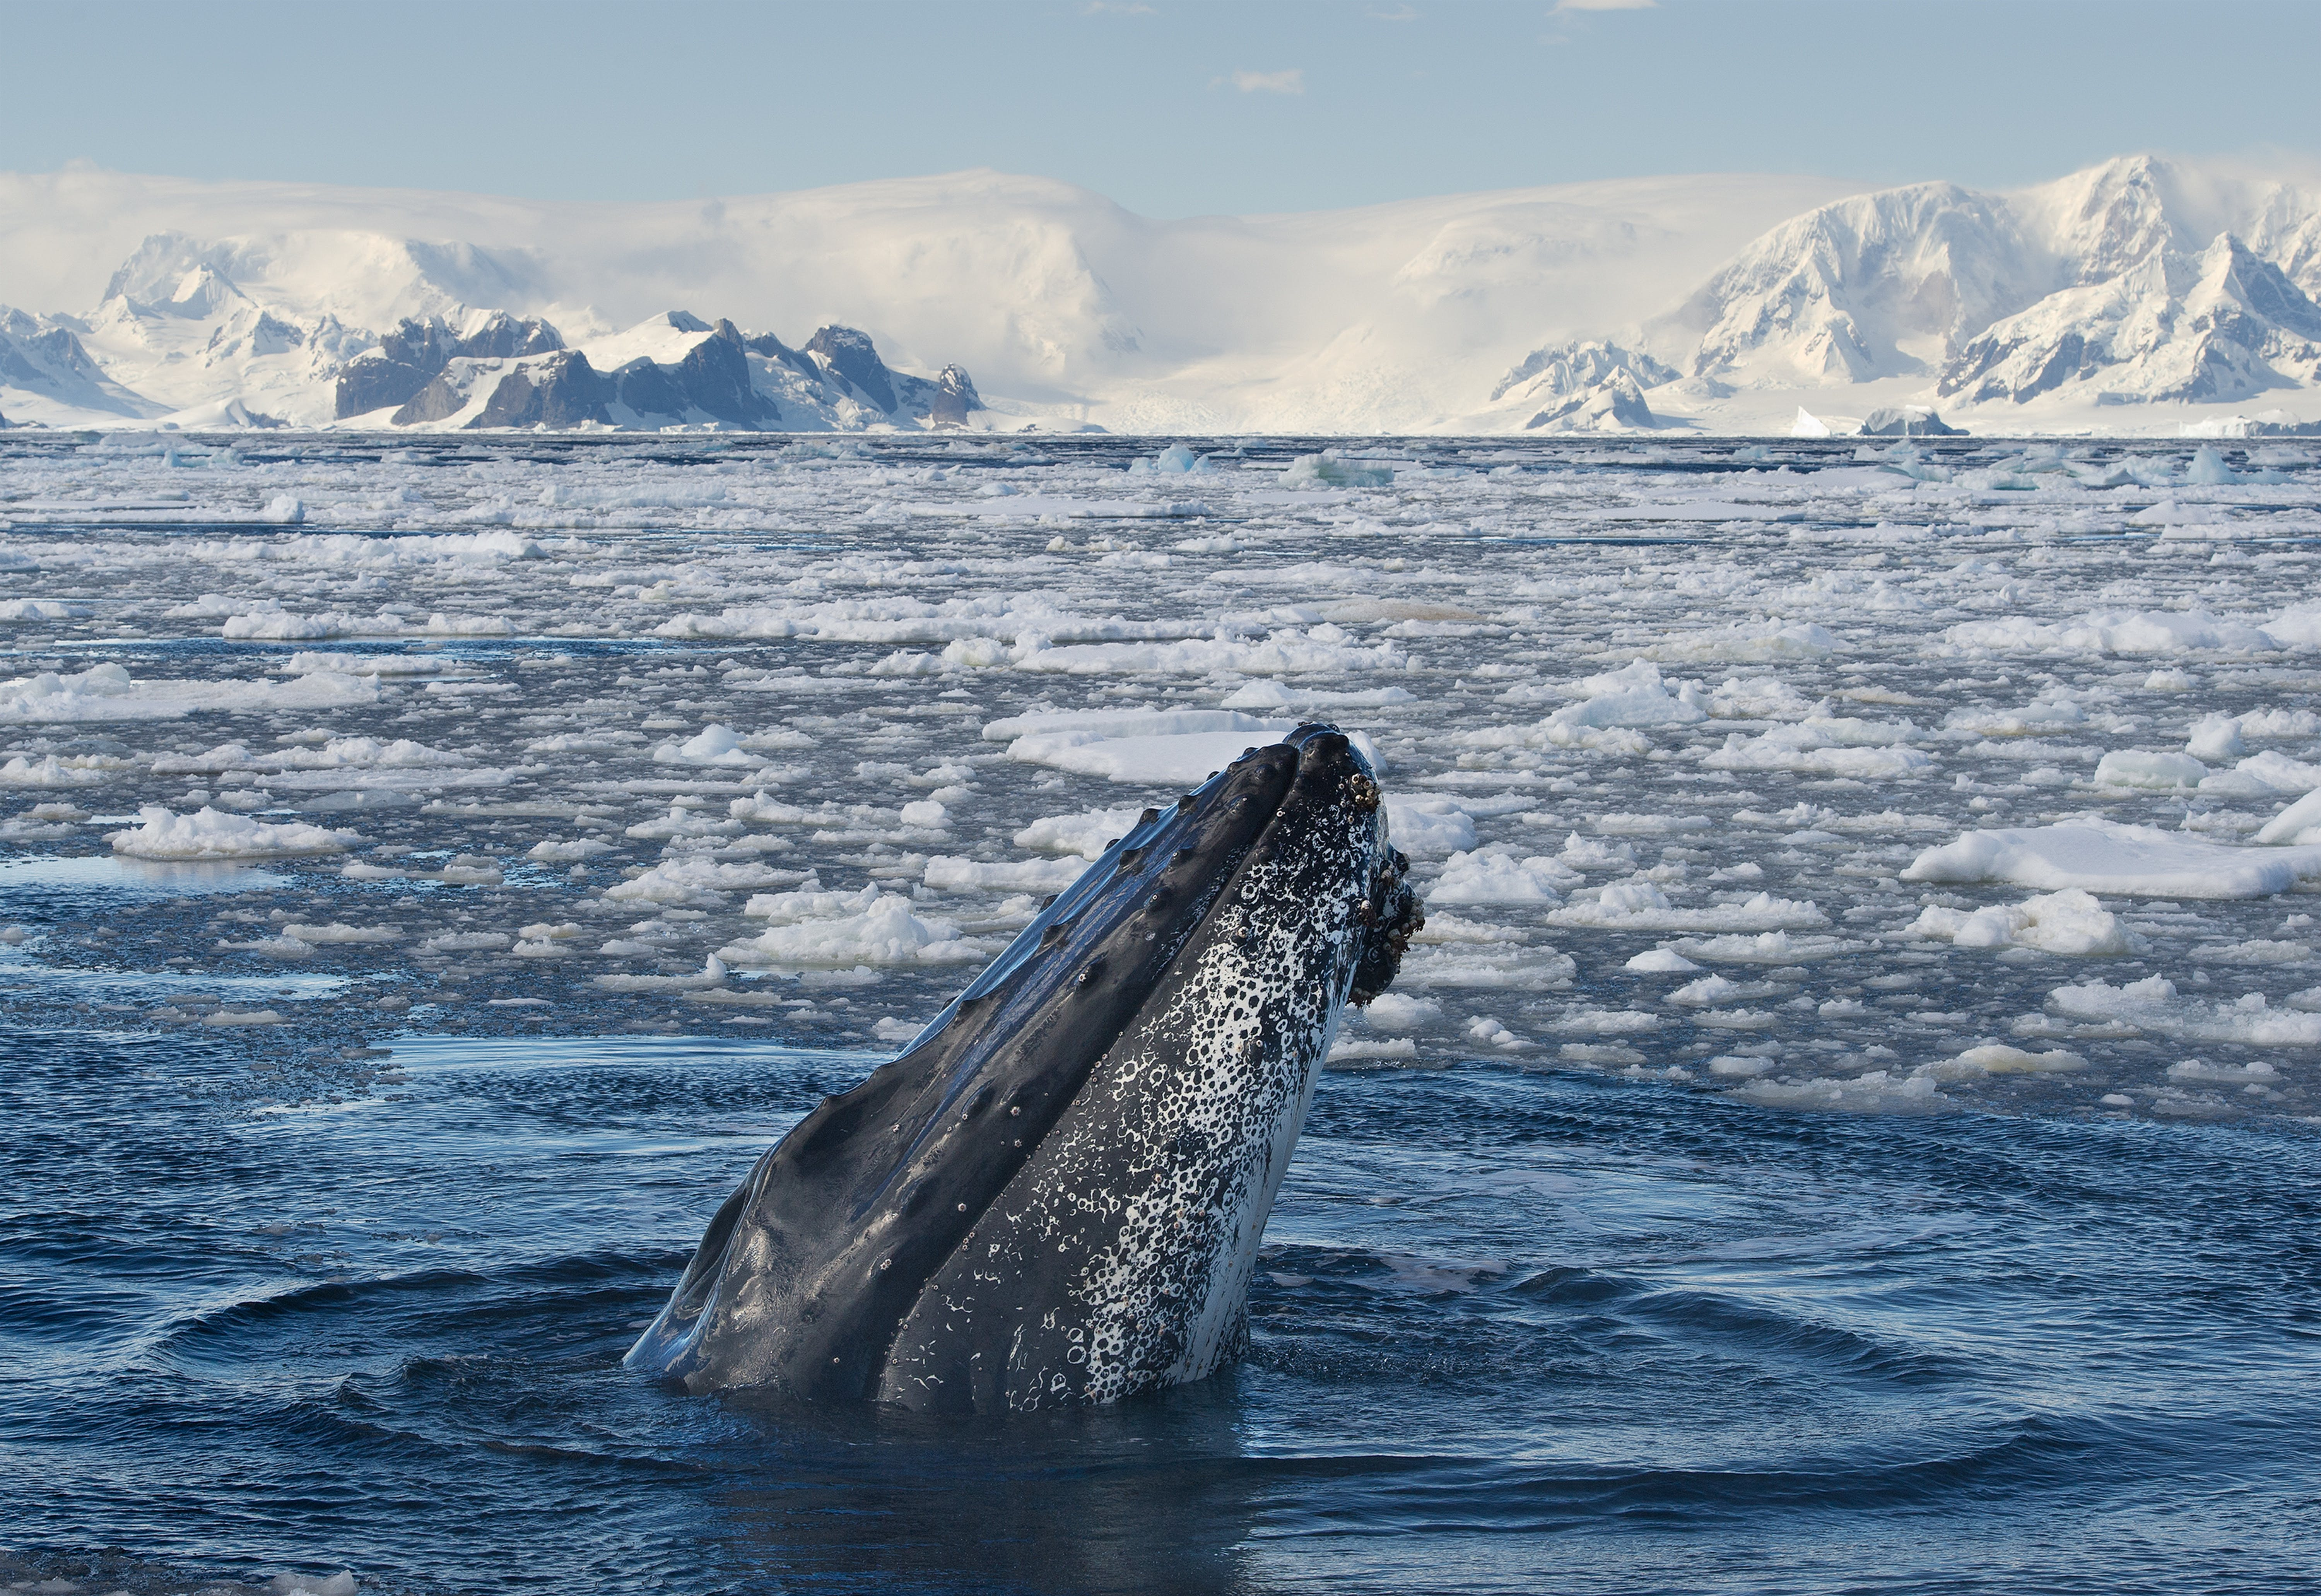 Whales make frequent appearances on polar expeditions.